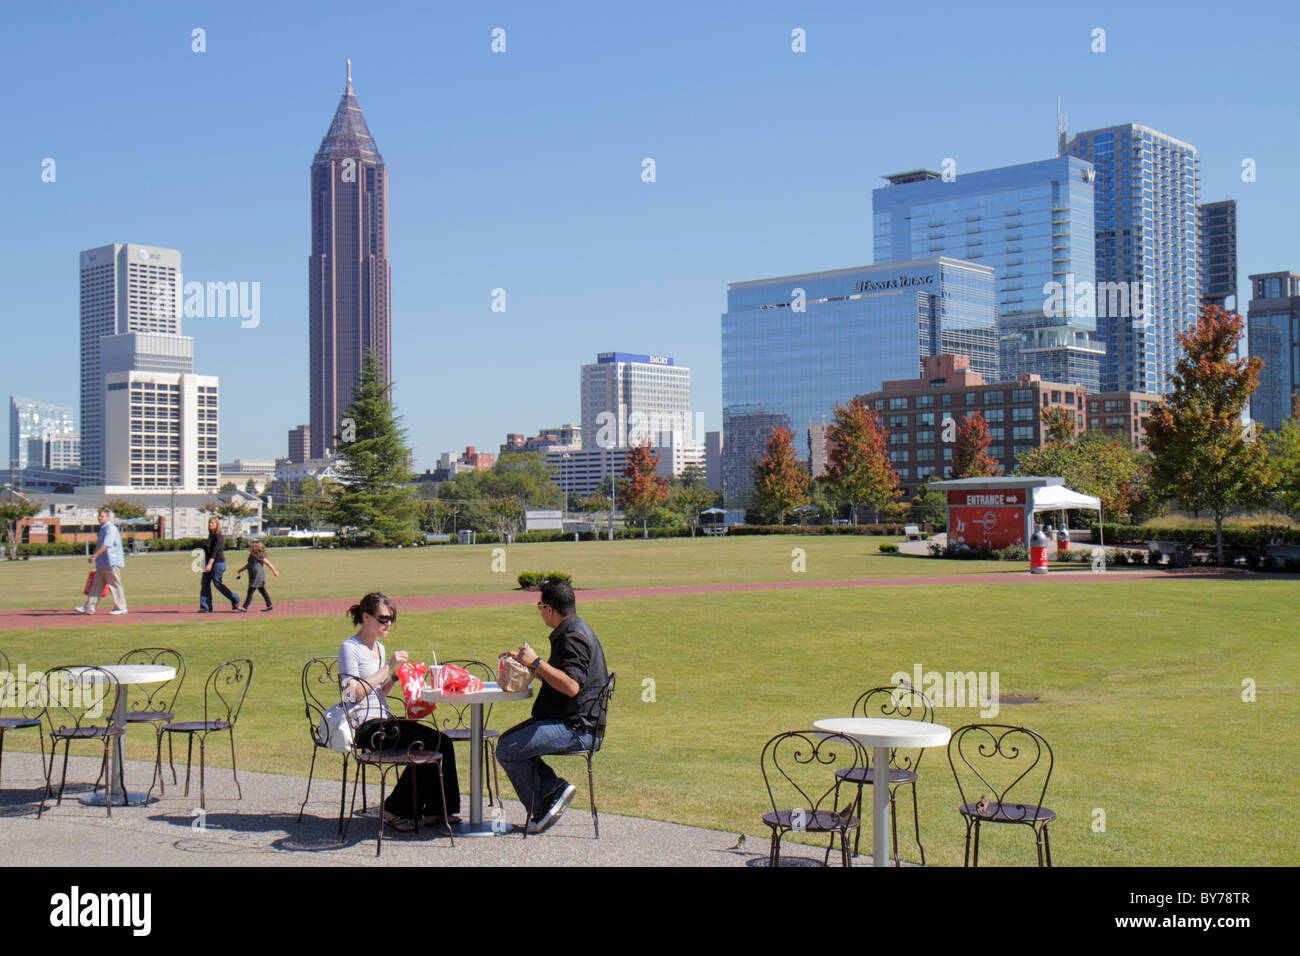 Atlanta Georgia downtown Pemberton Place World of Coca-Cola lawn skyline building man boy Bank of America Tower - Stock Image